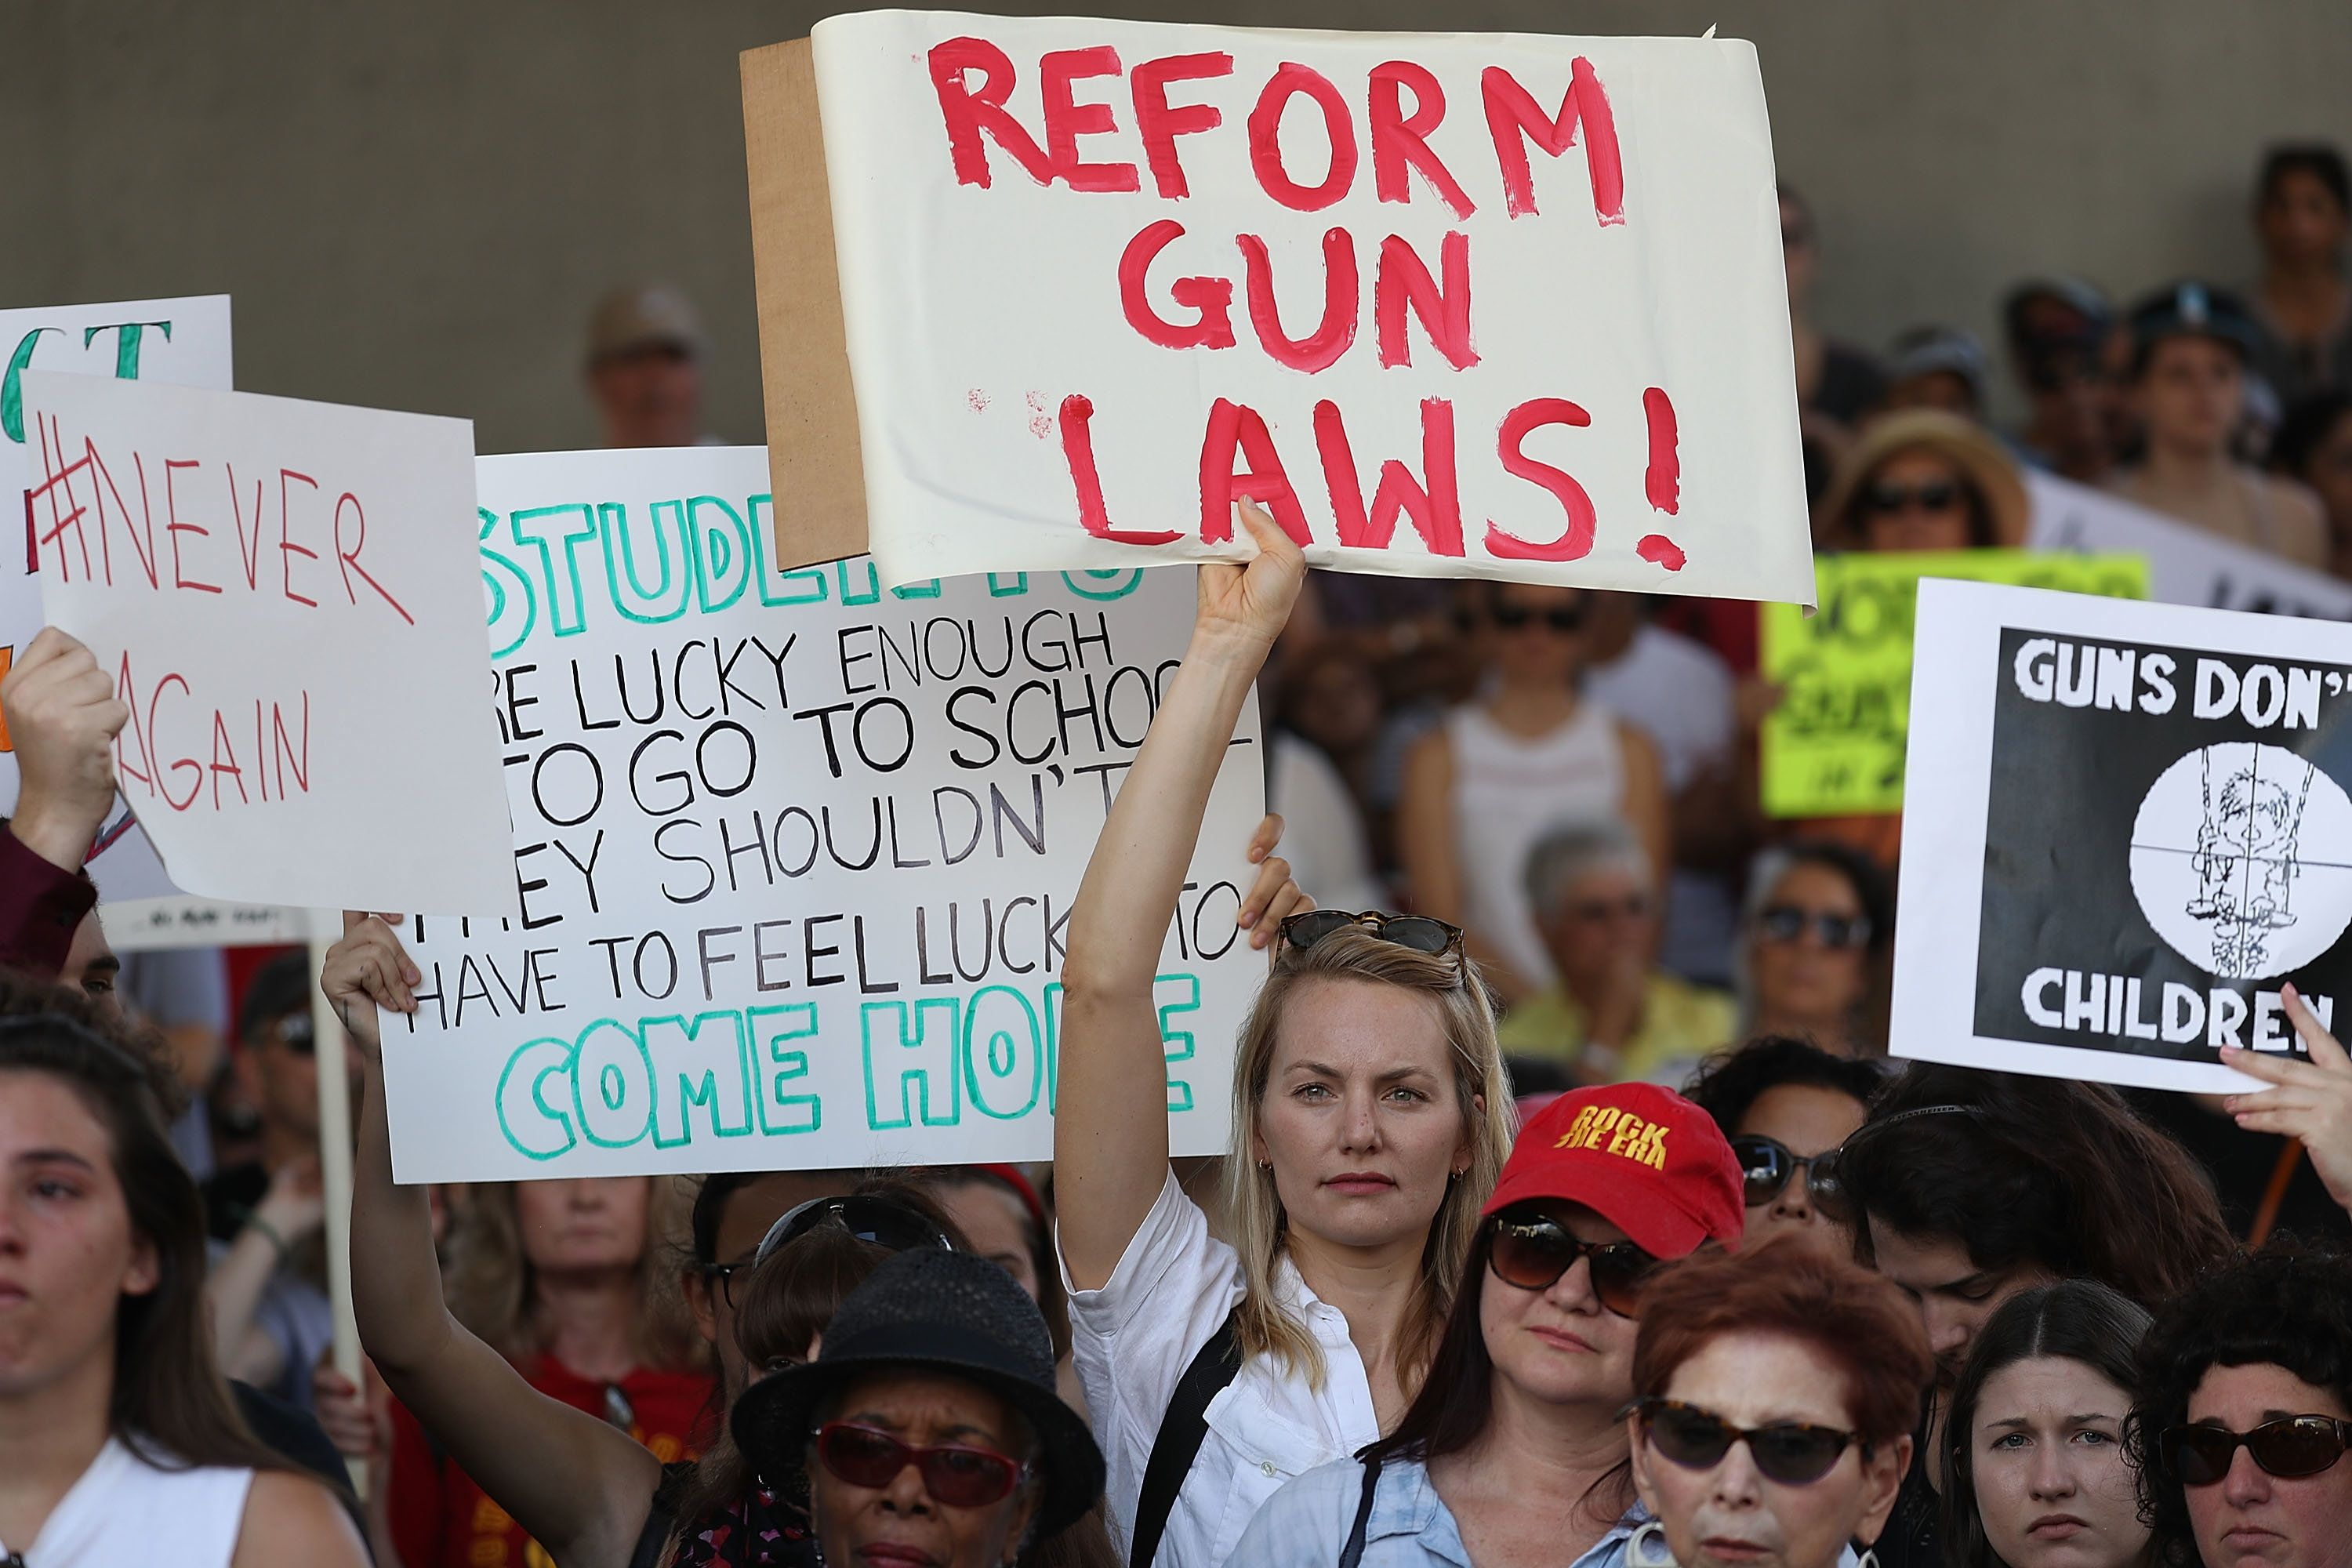 Hundreds gathered to protest against guns on the steps of the Broward County Federal courthouse on February 17, 2018 in Fort